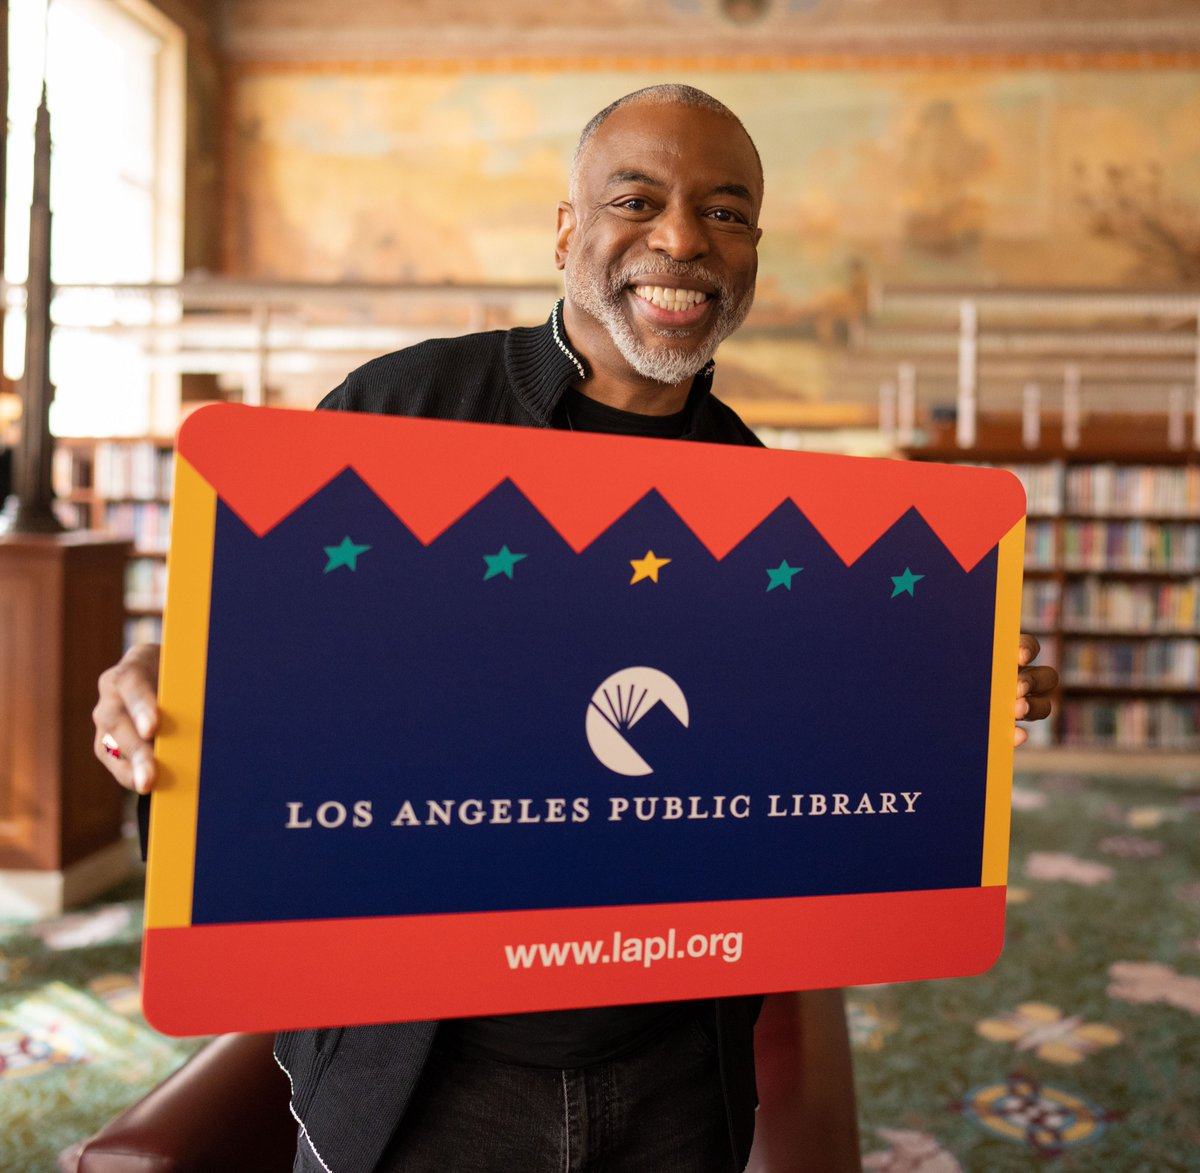 Replying to @LAPublicLibrary: Raise your hand if you were inspired to read by @levarburton. #NationalLibraryWeek